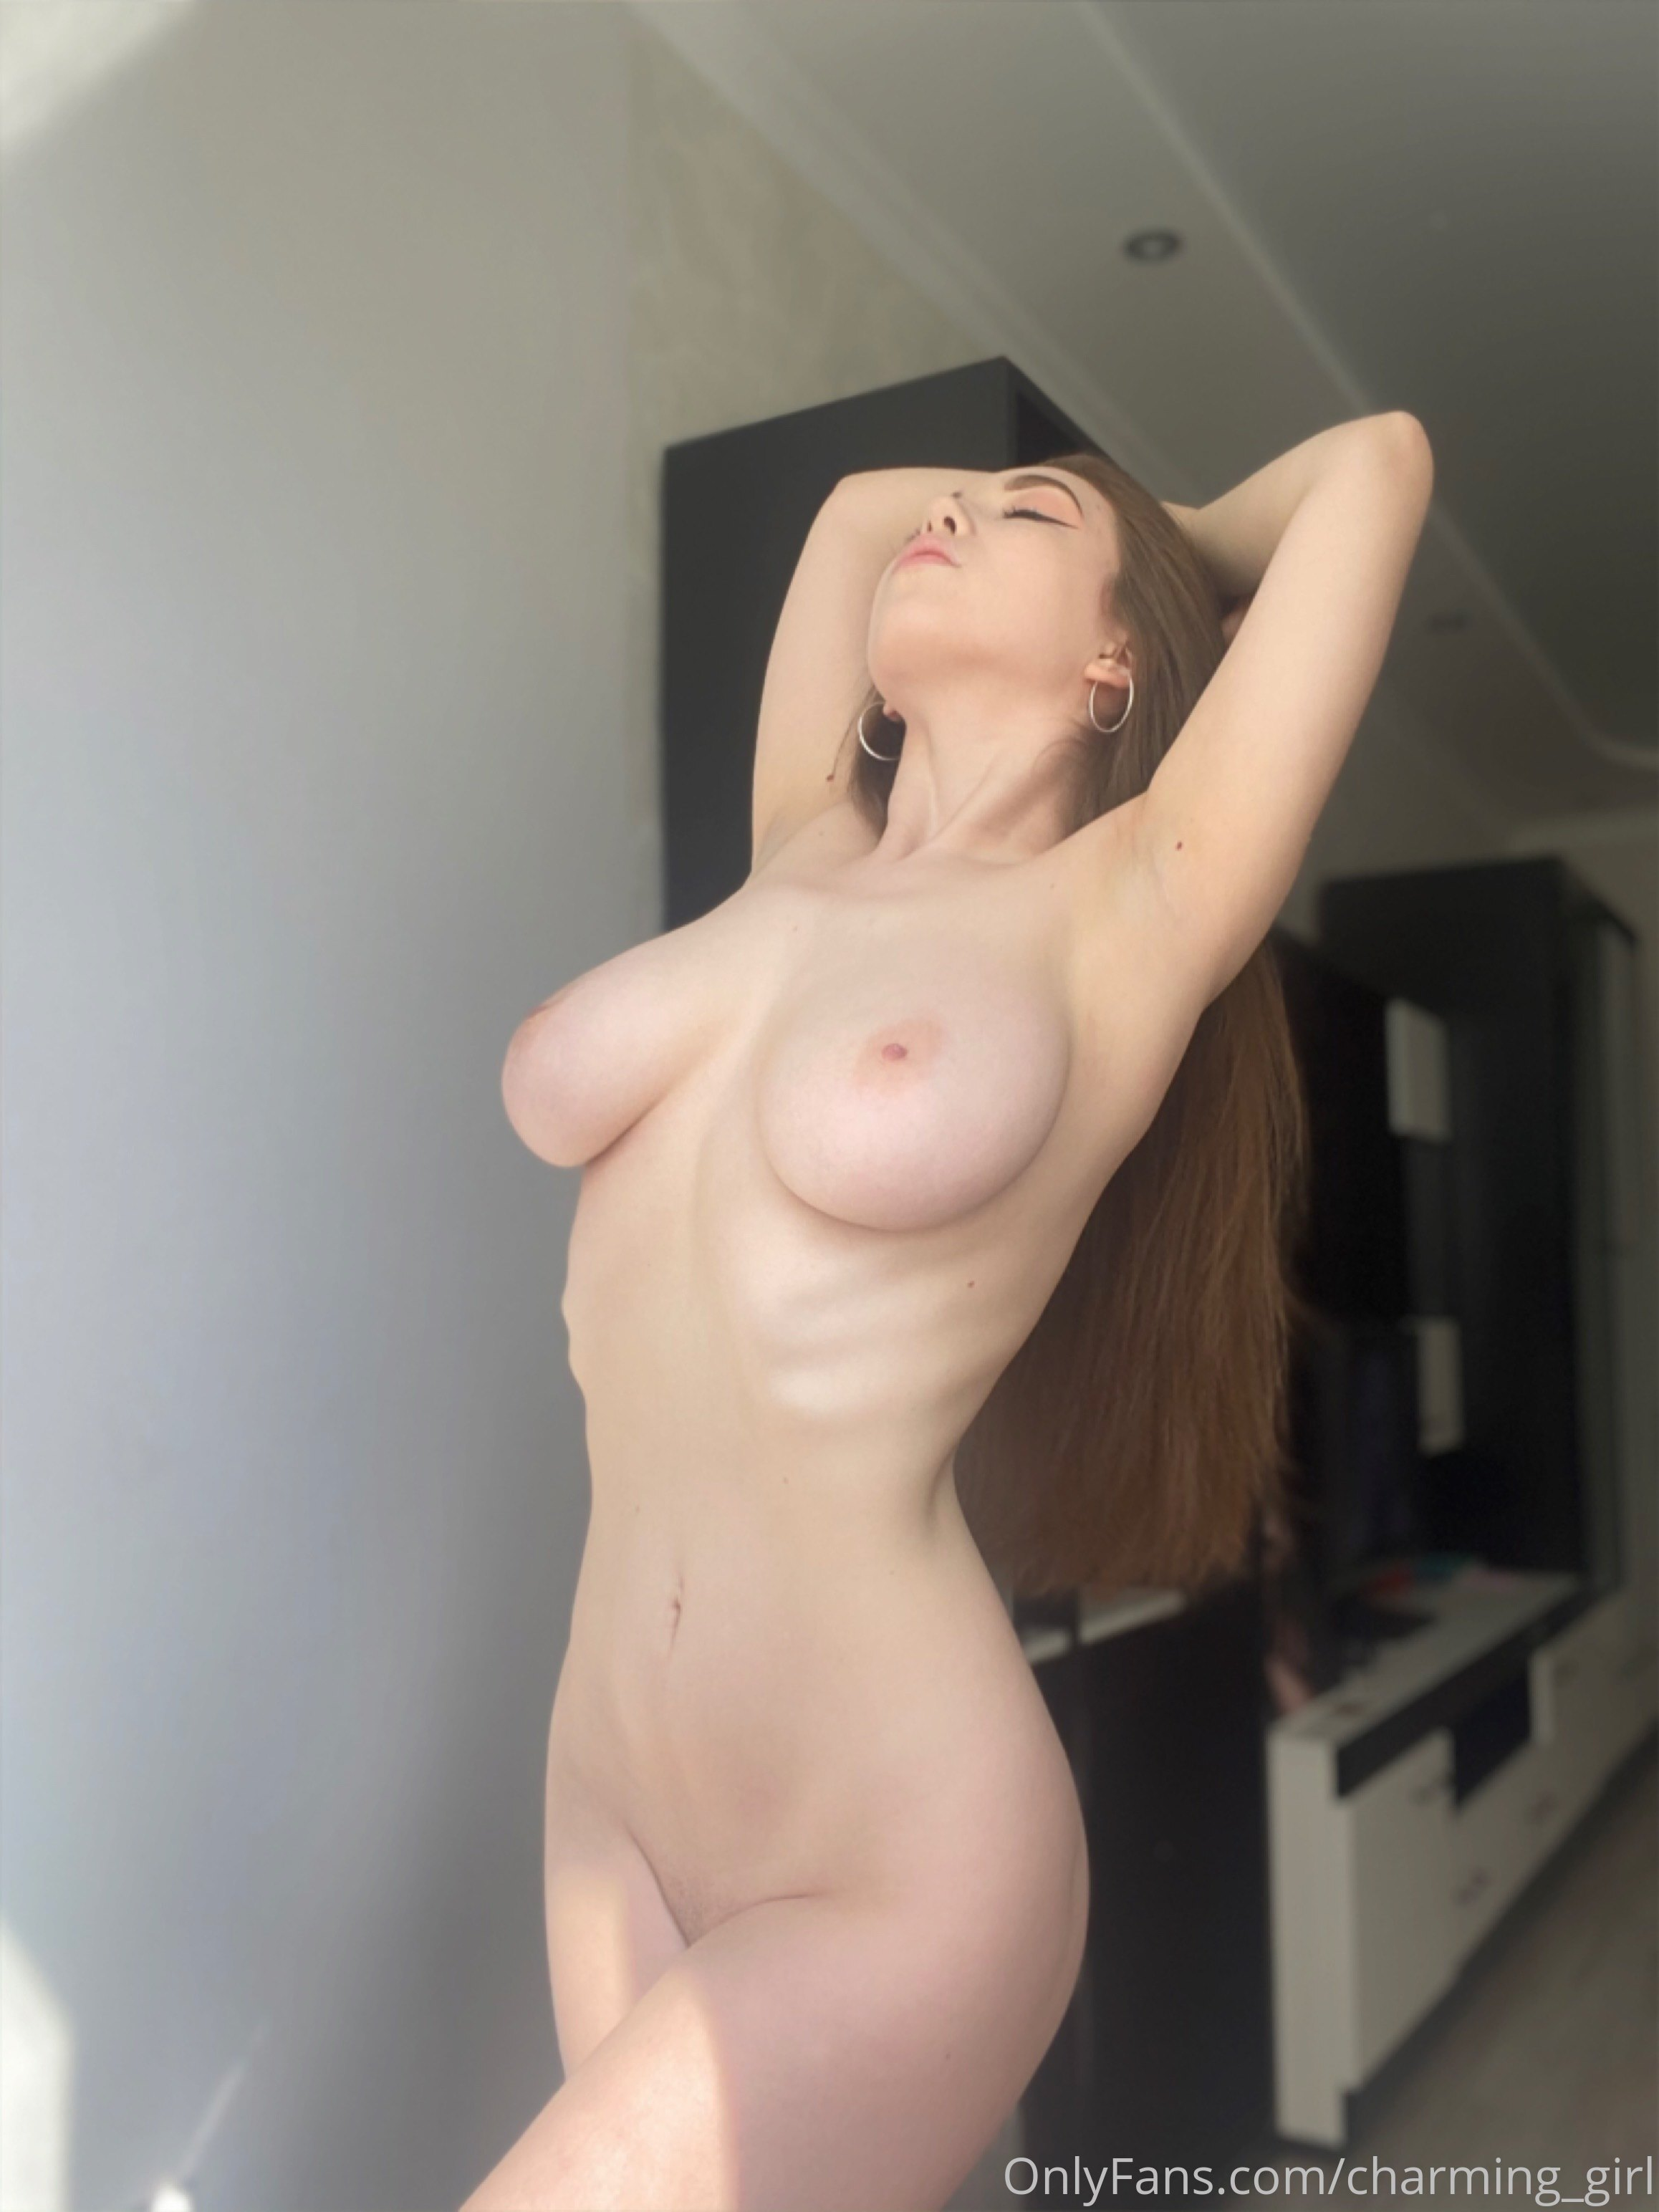 Milana, Charming Girl, Onlyfans 0049